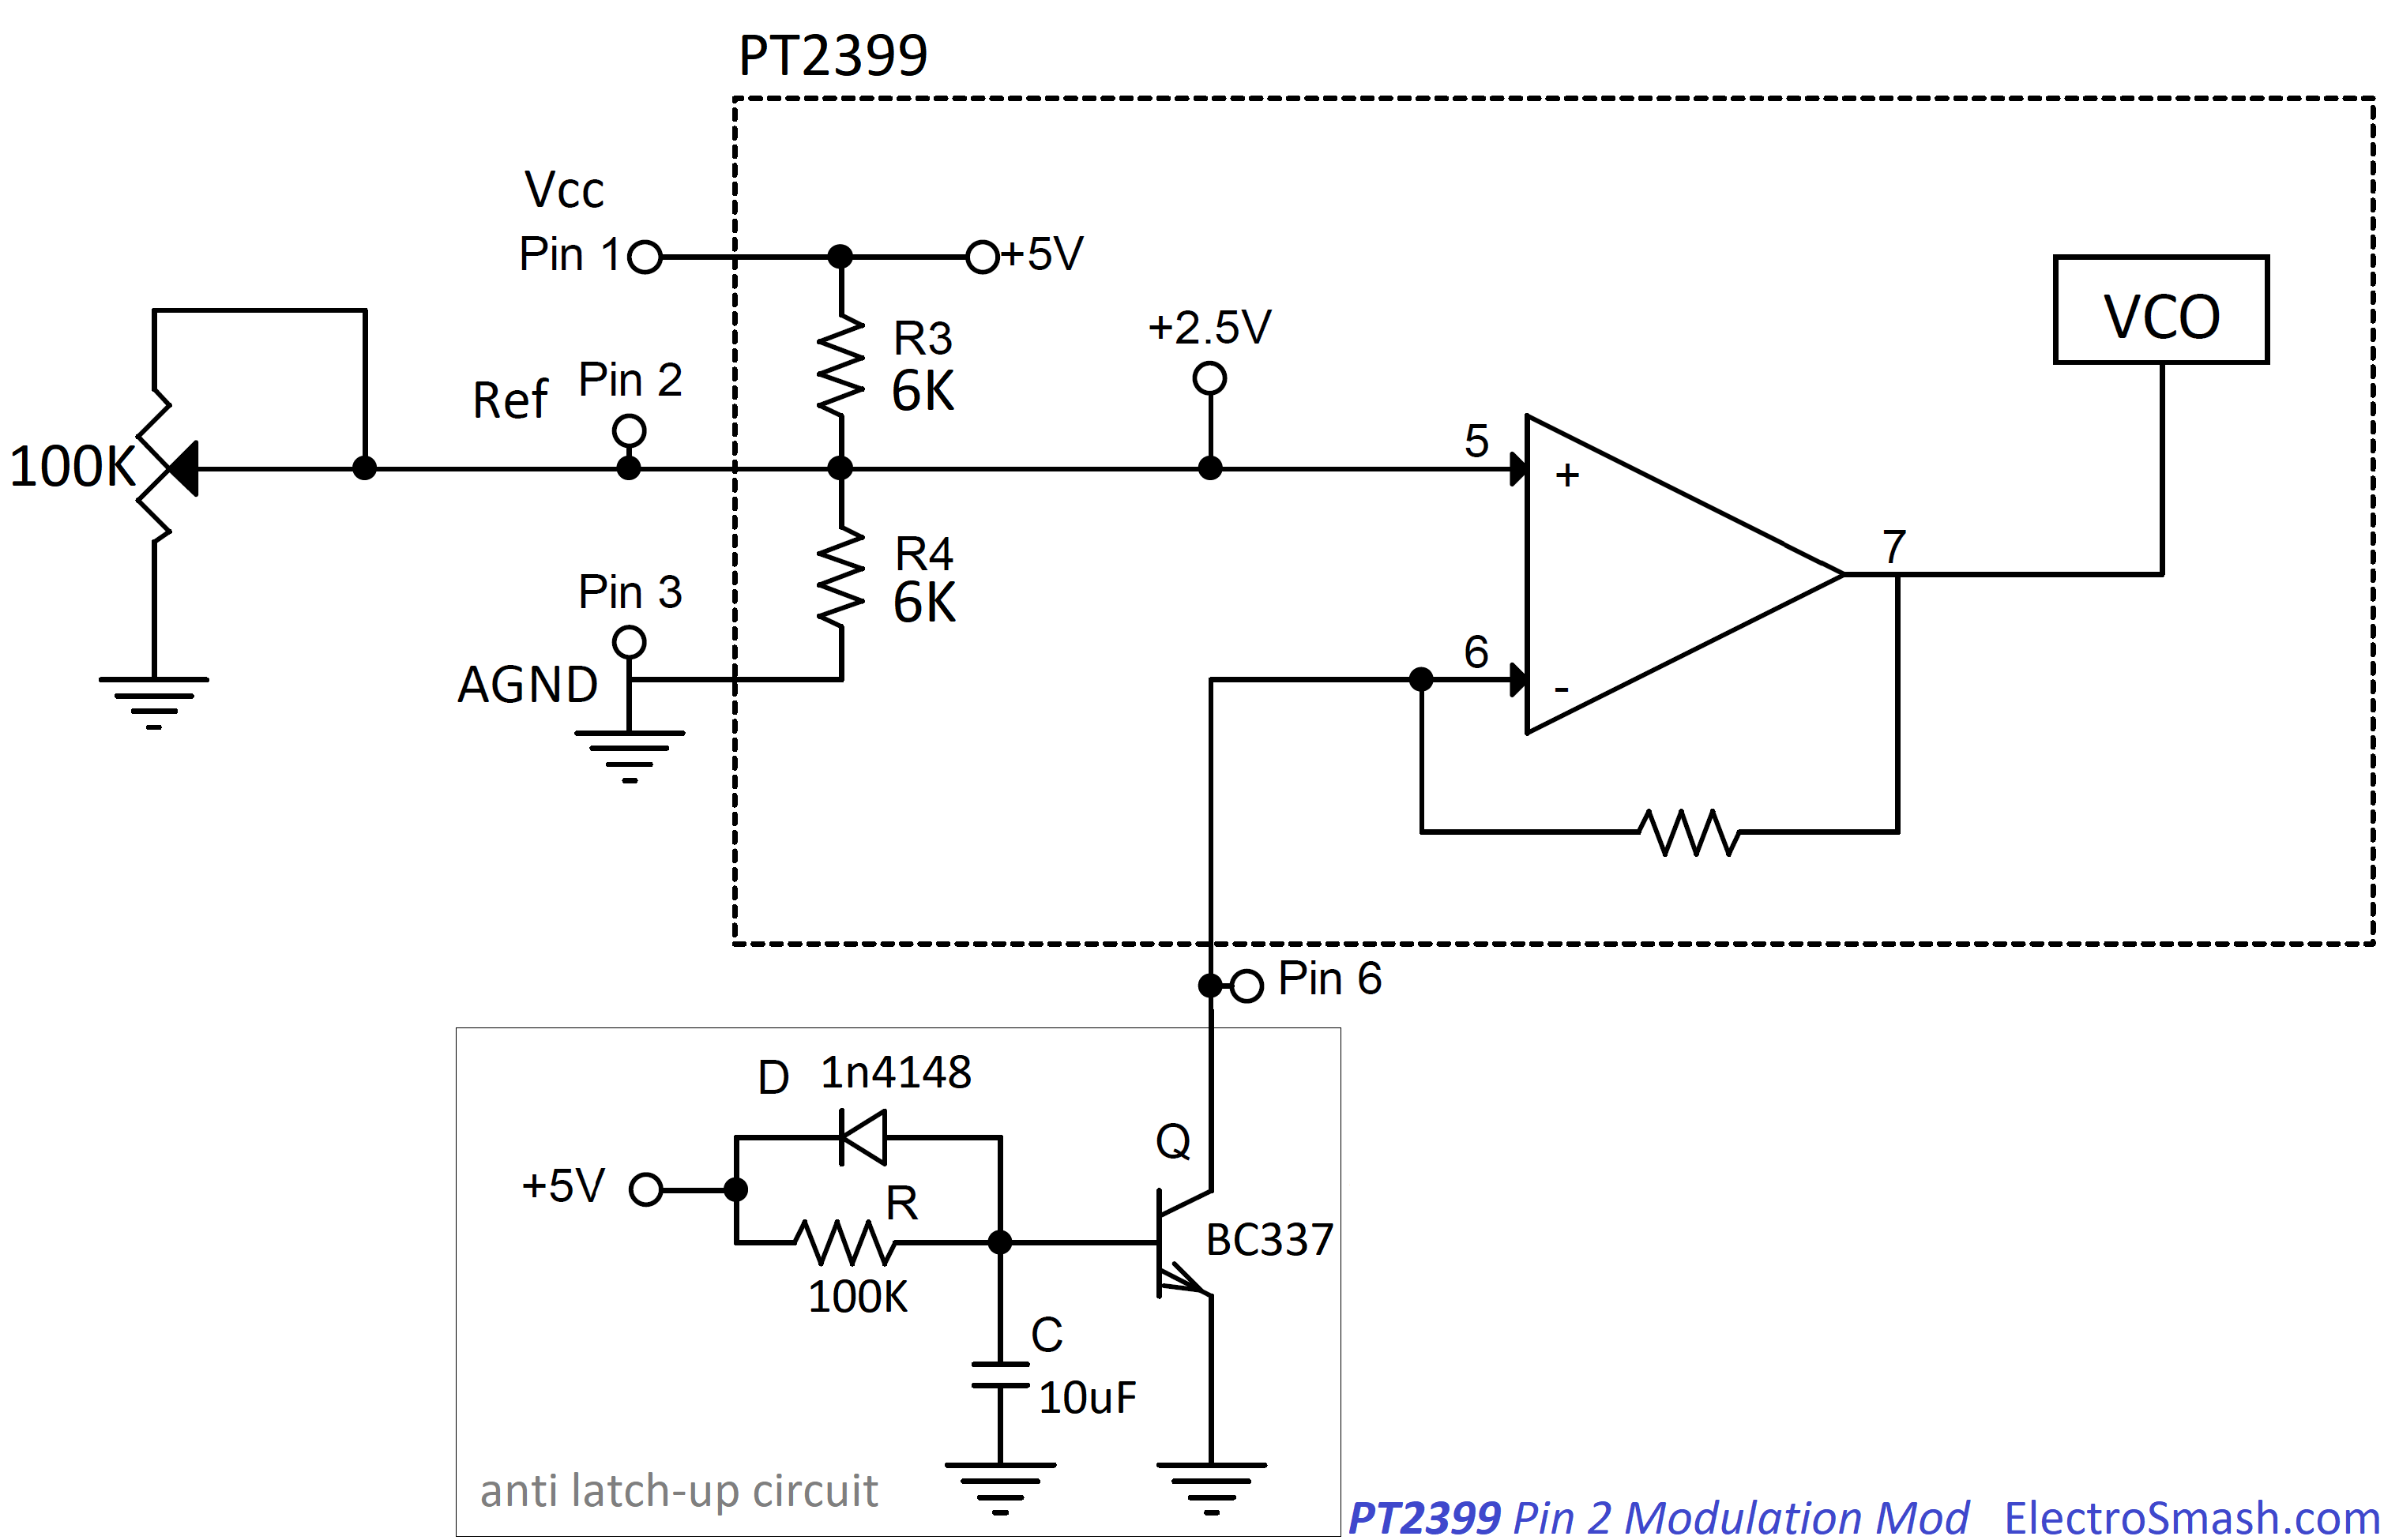 Electrosmash Pt2399 Analysis Pujt Voltage Comparator Power On Delay Circuits Pin2 Modulation